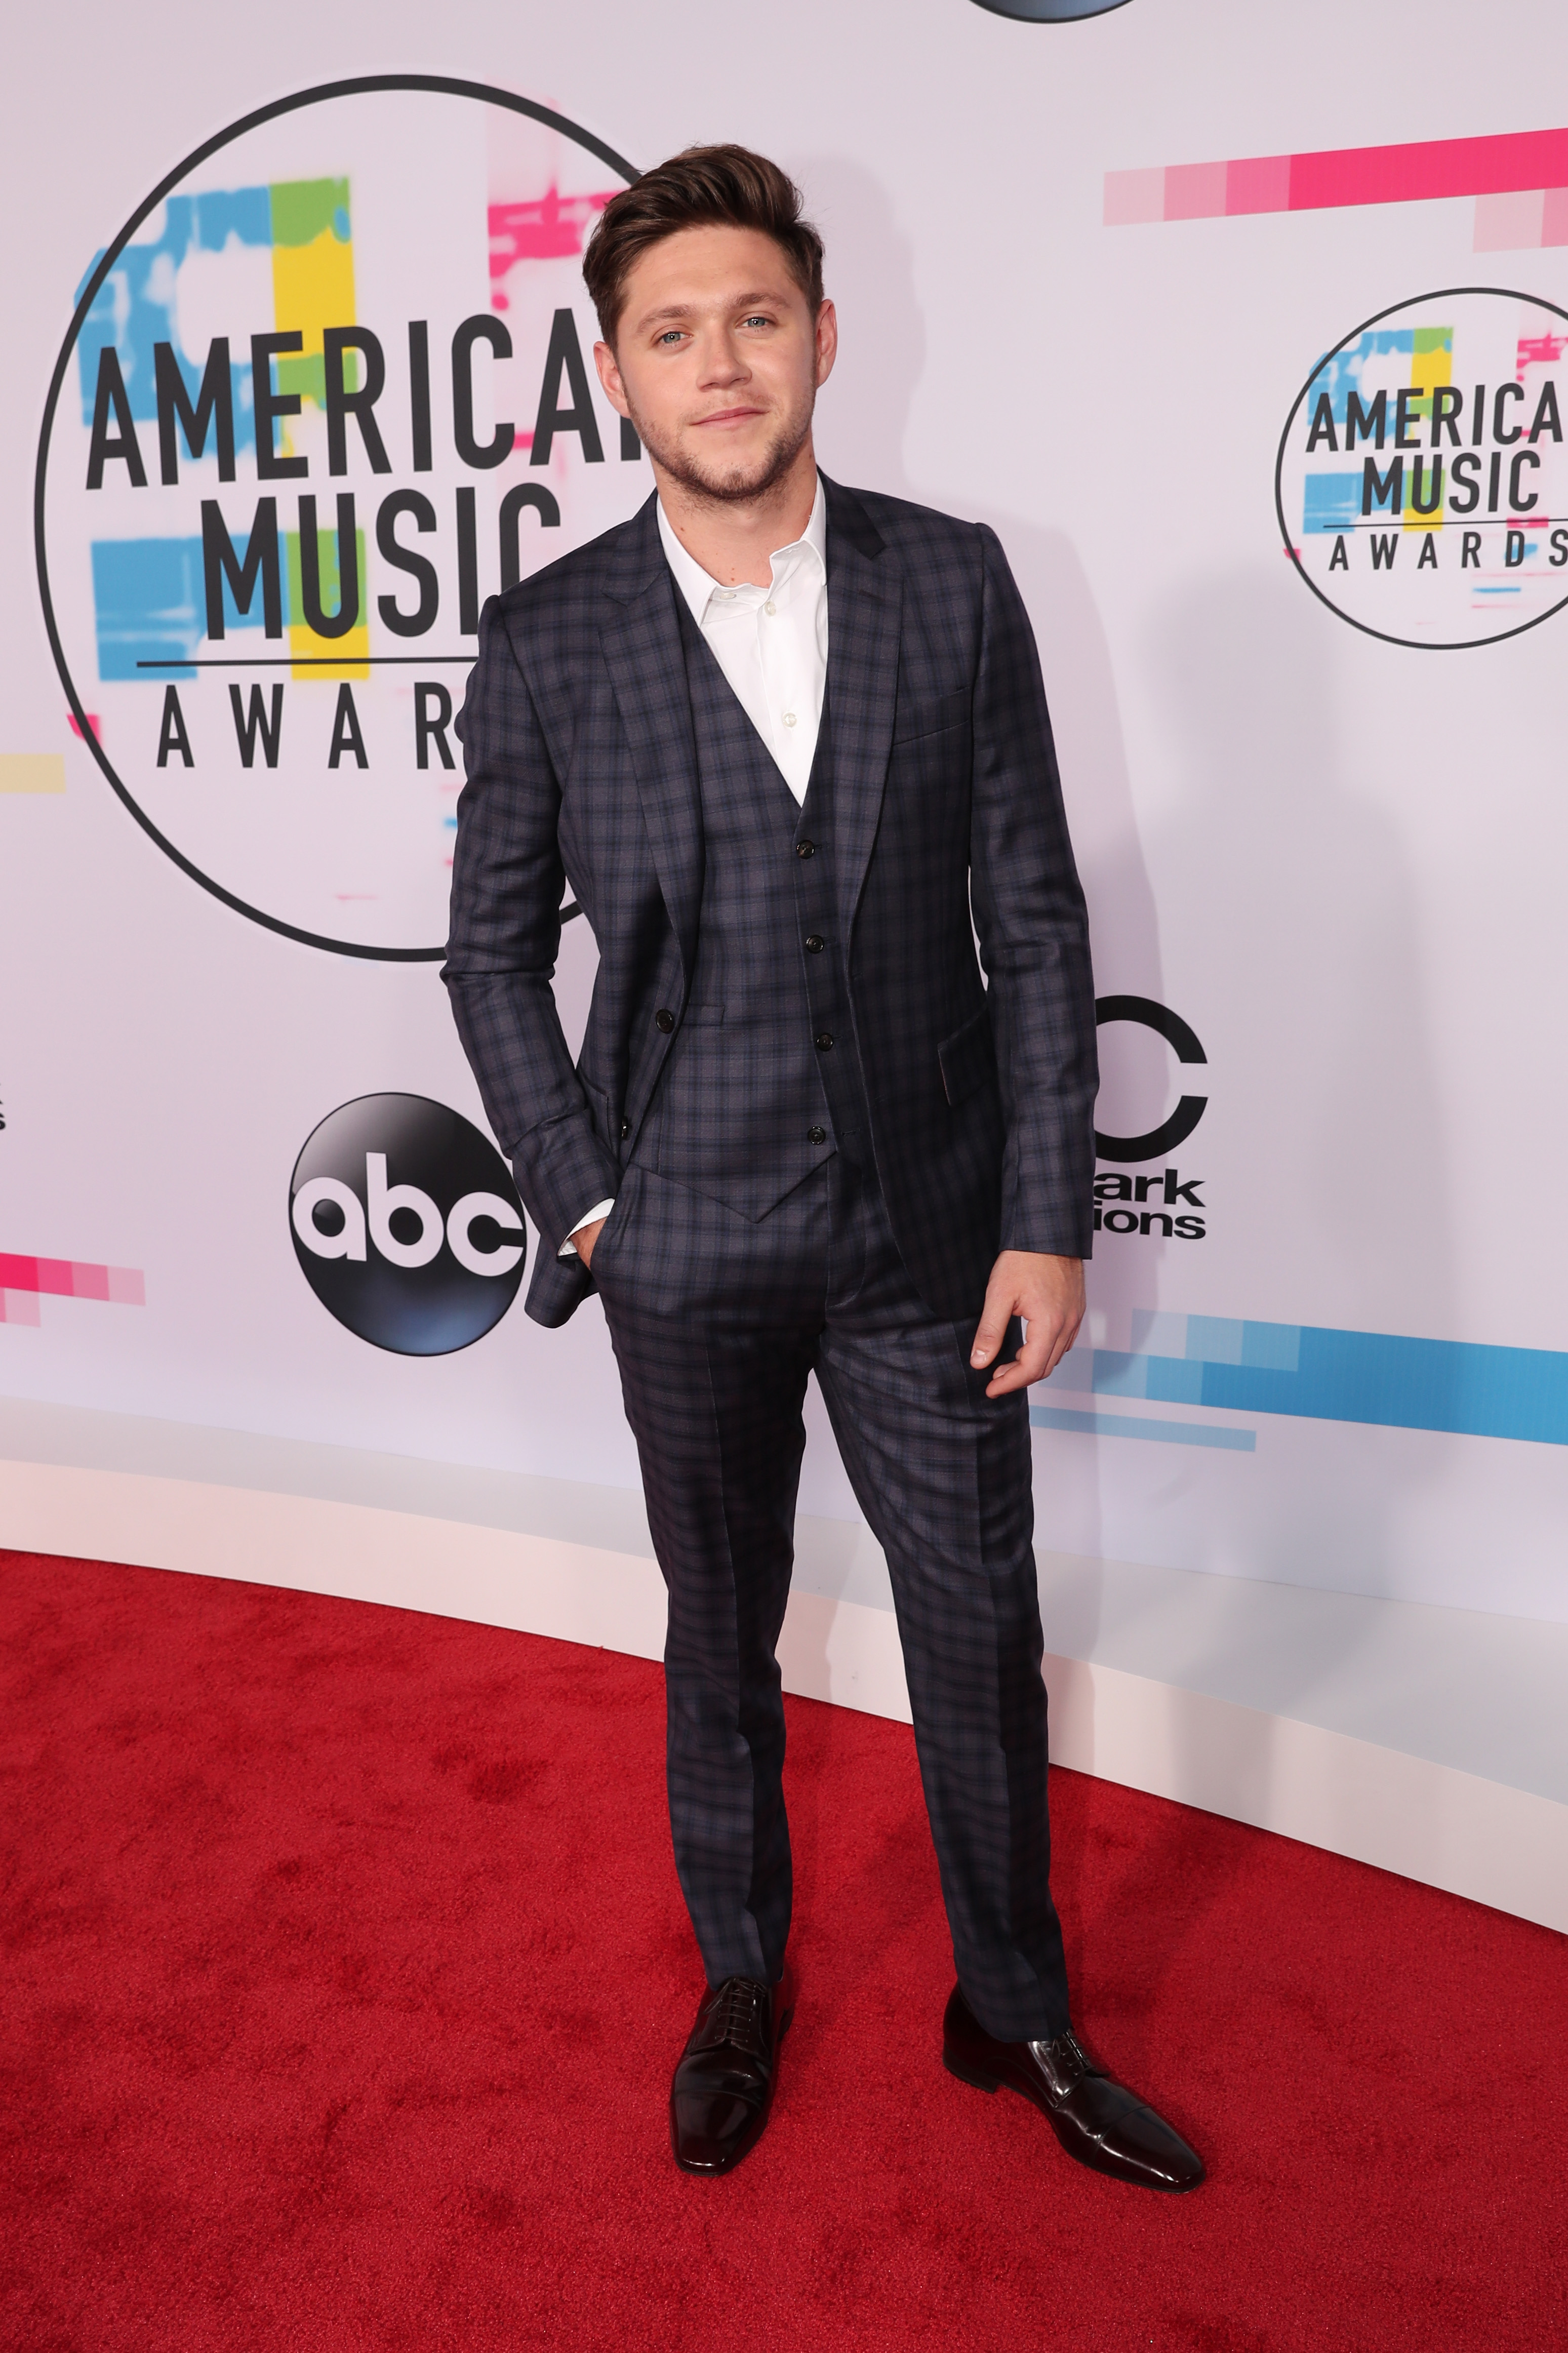 The 2017 American Music Awards | 9Style